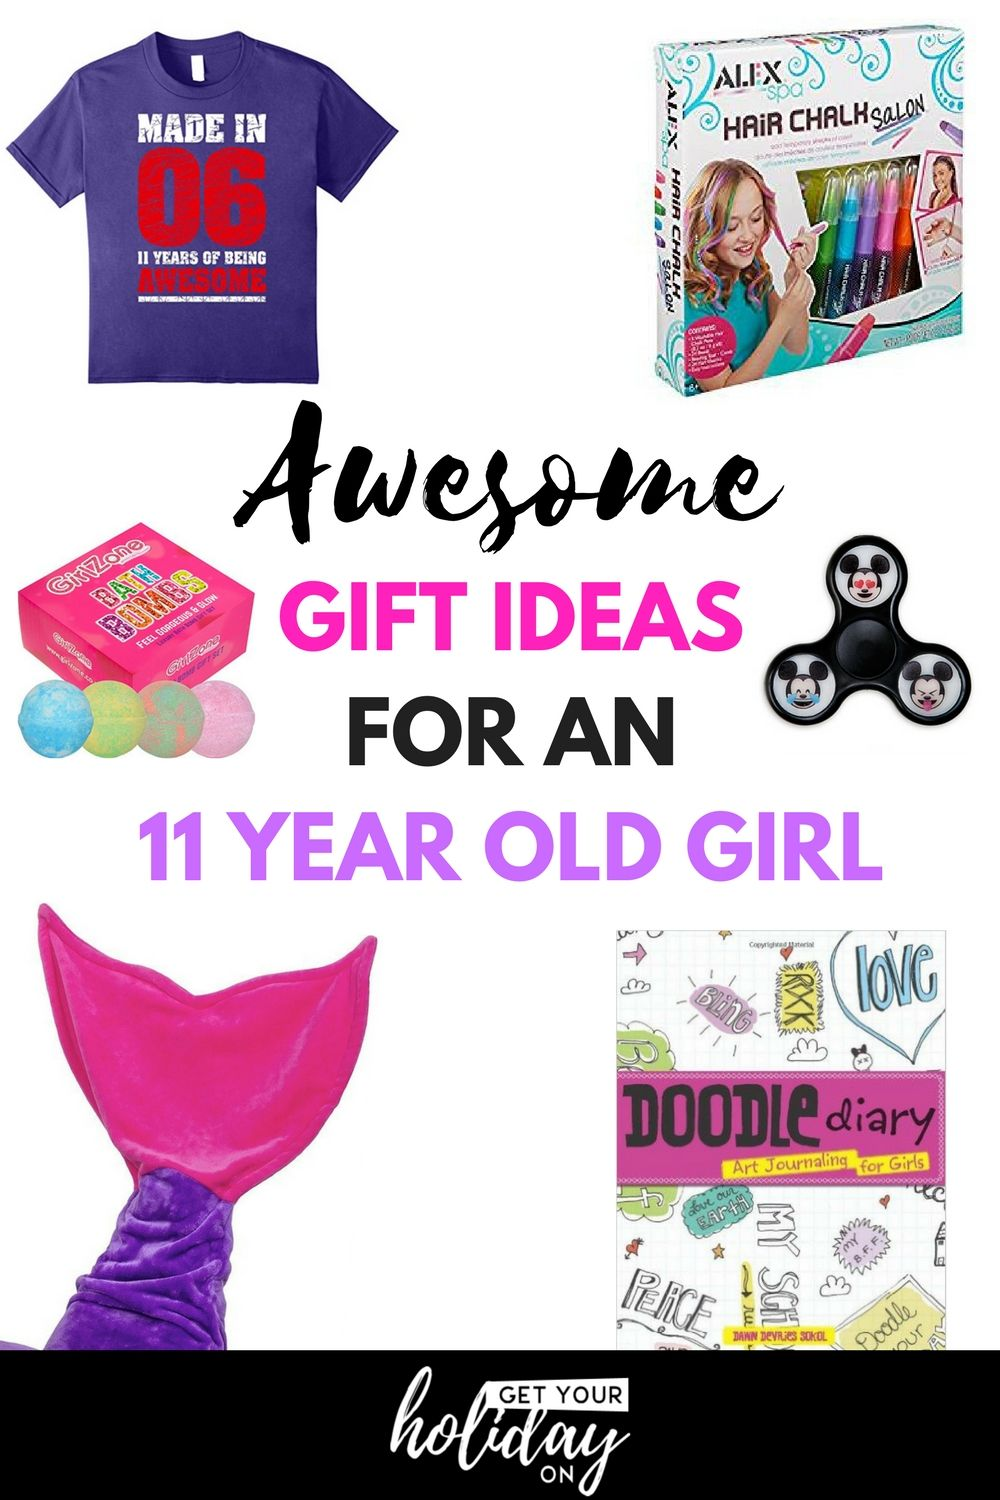 Cassie Has Been Stuck Trying To Figure Out What In The World Get Her 11 Year Old Daughter She Created A Post Share With Others Several Gift Ideas